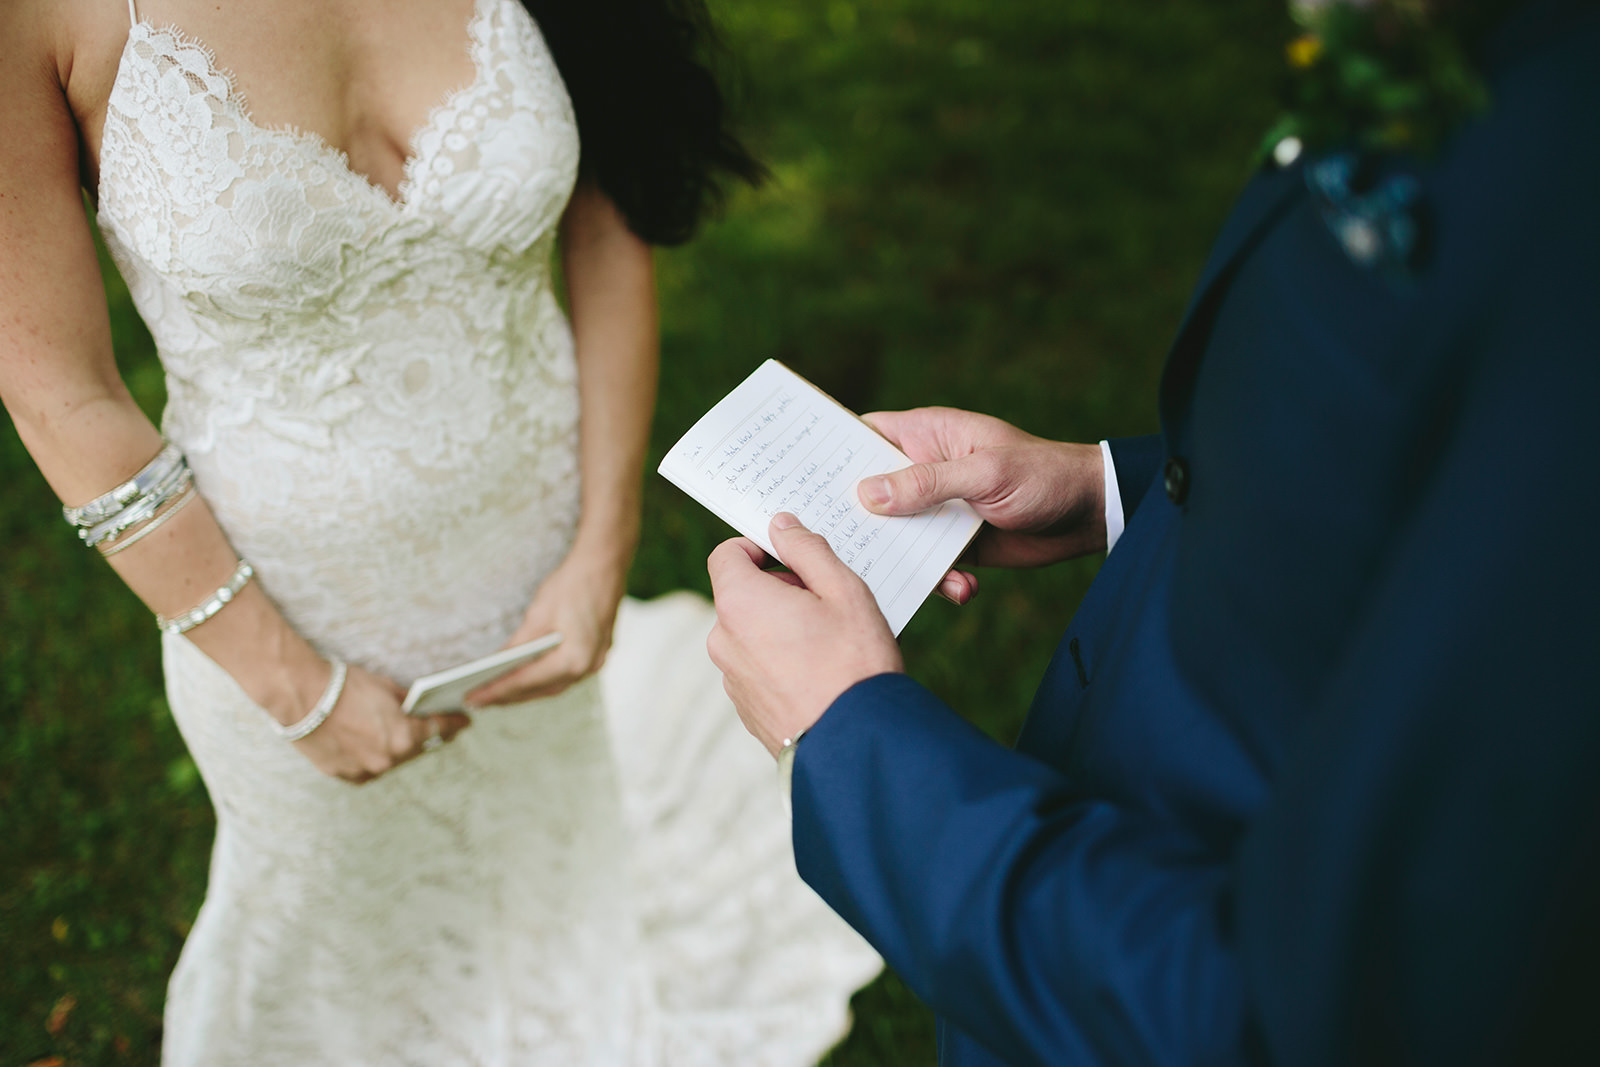 exchanging private vows